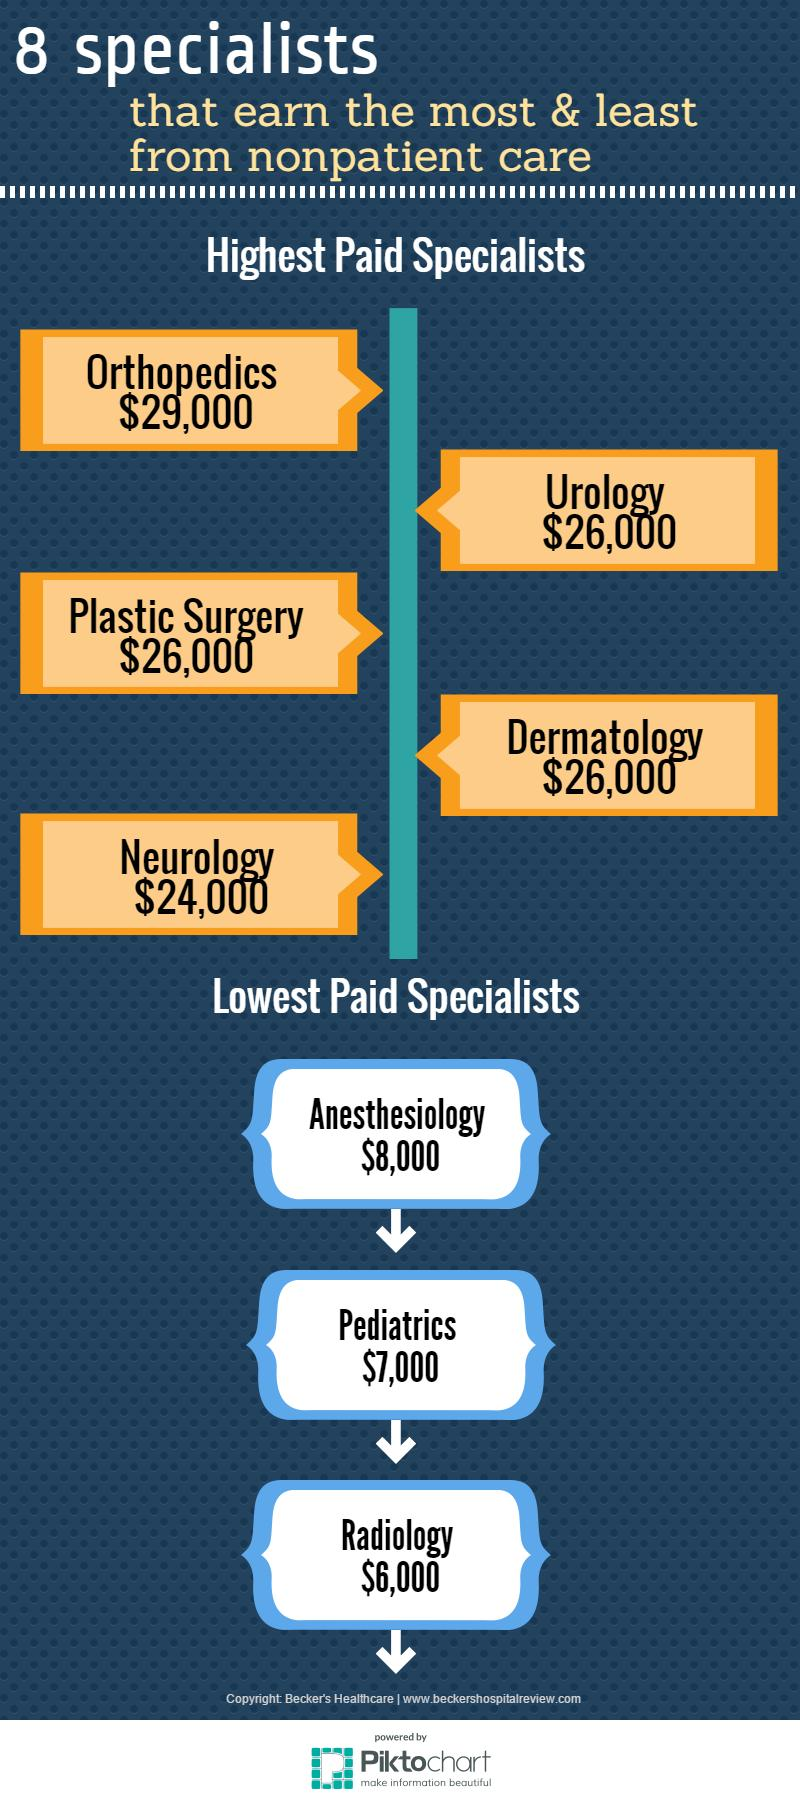 Specialists - earning most & least for nonpatient care